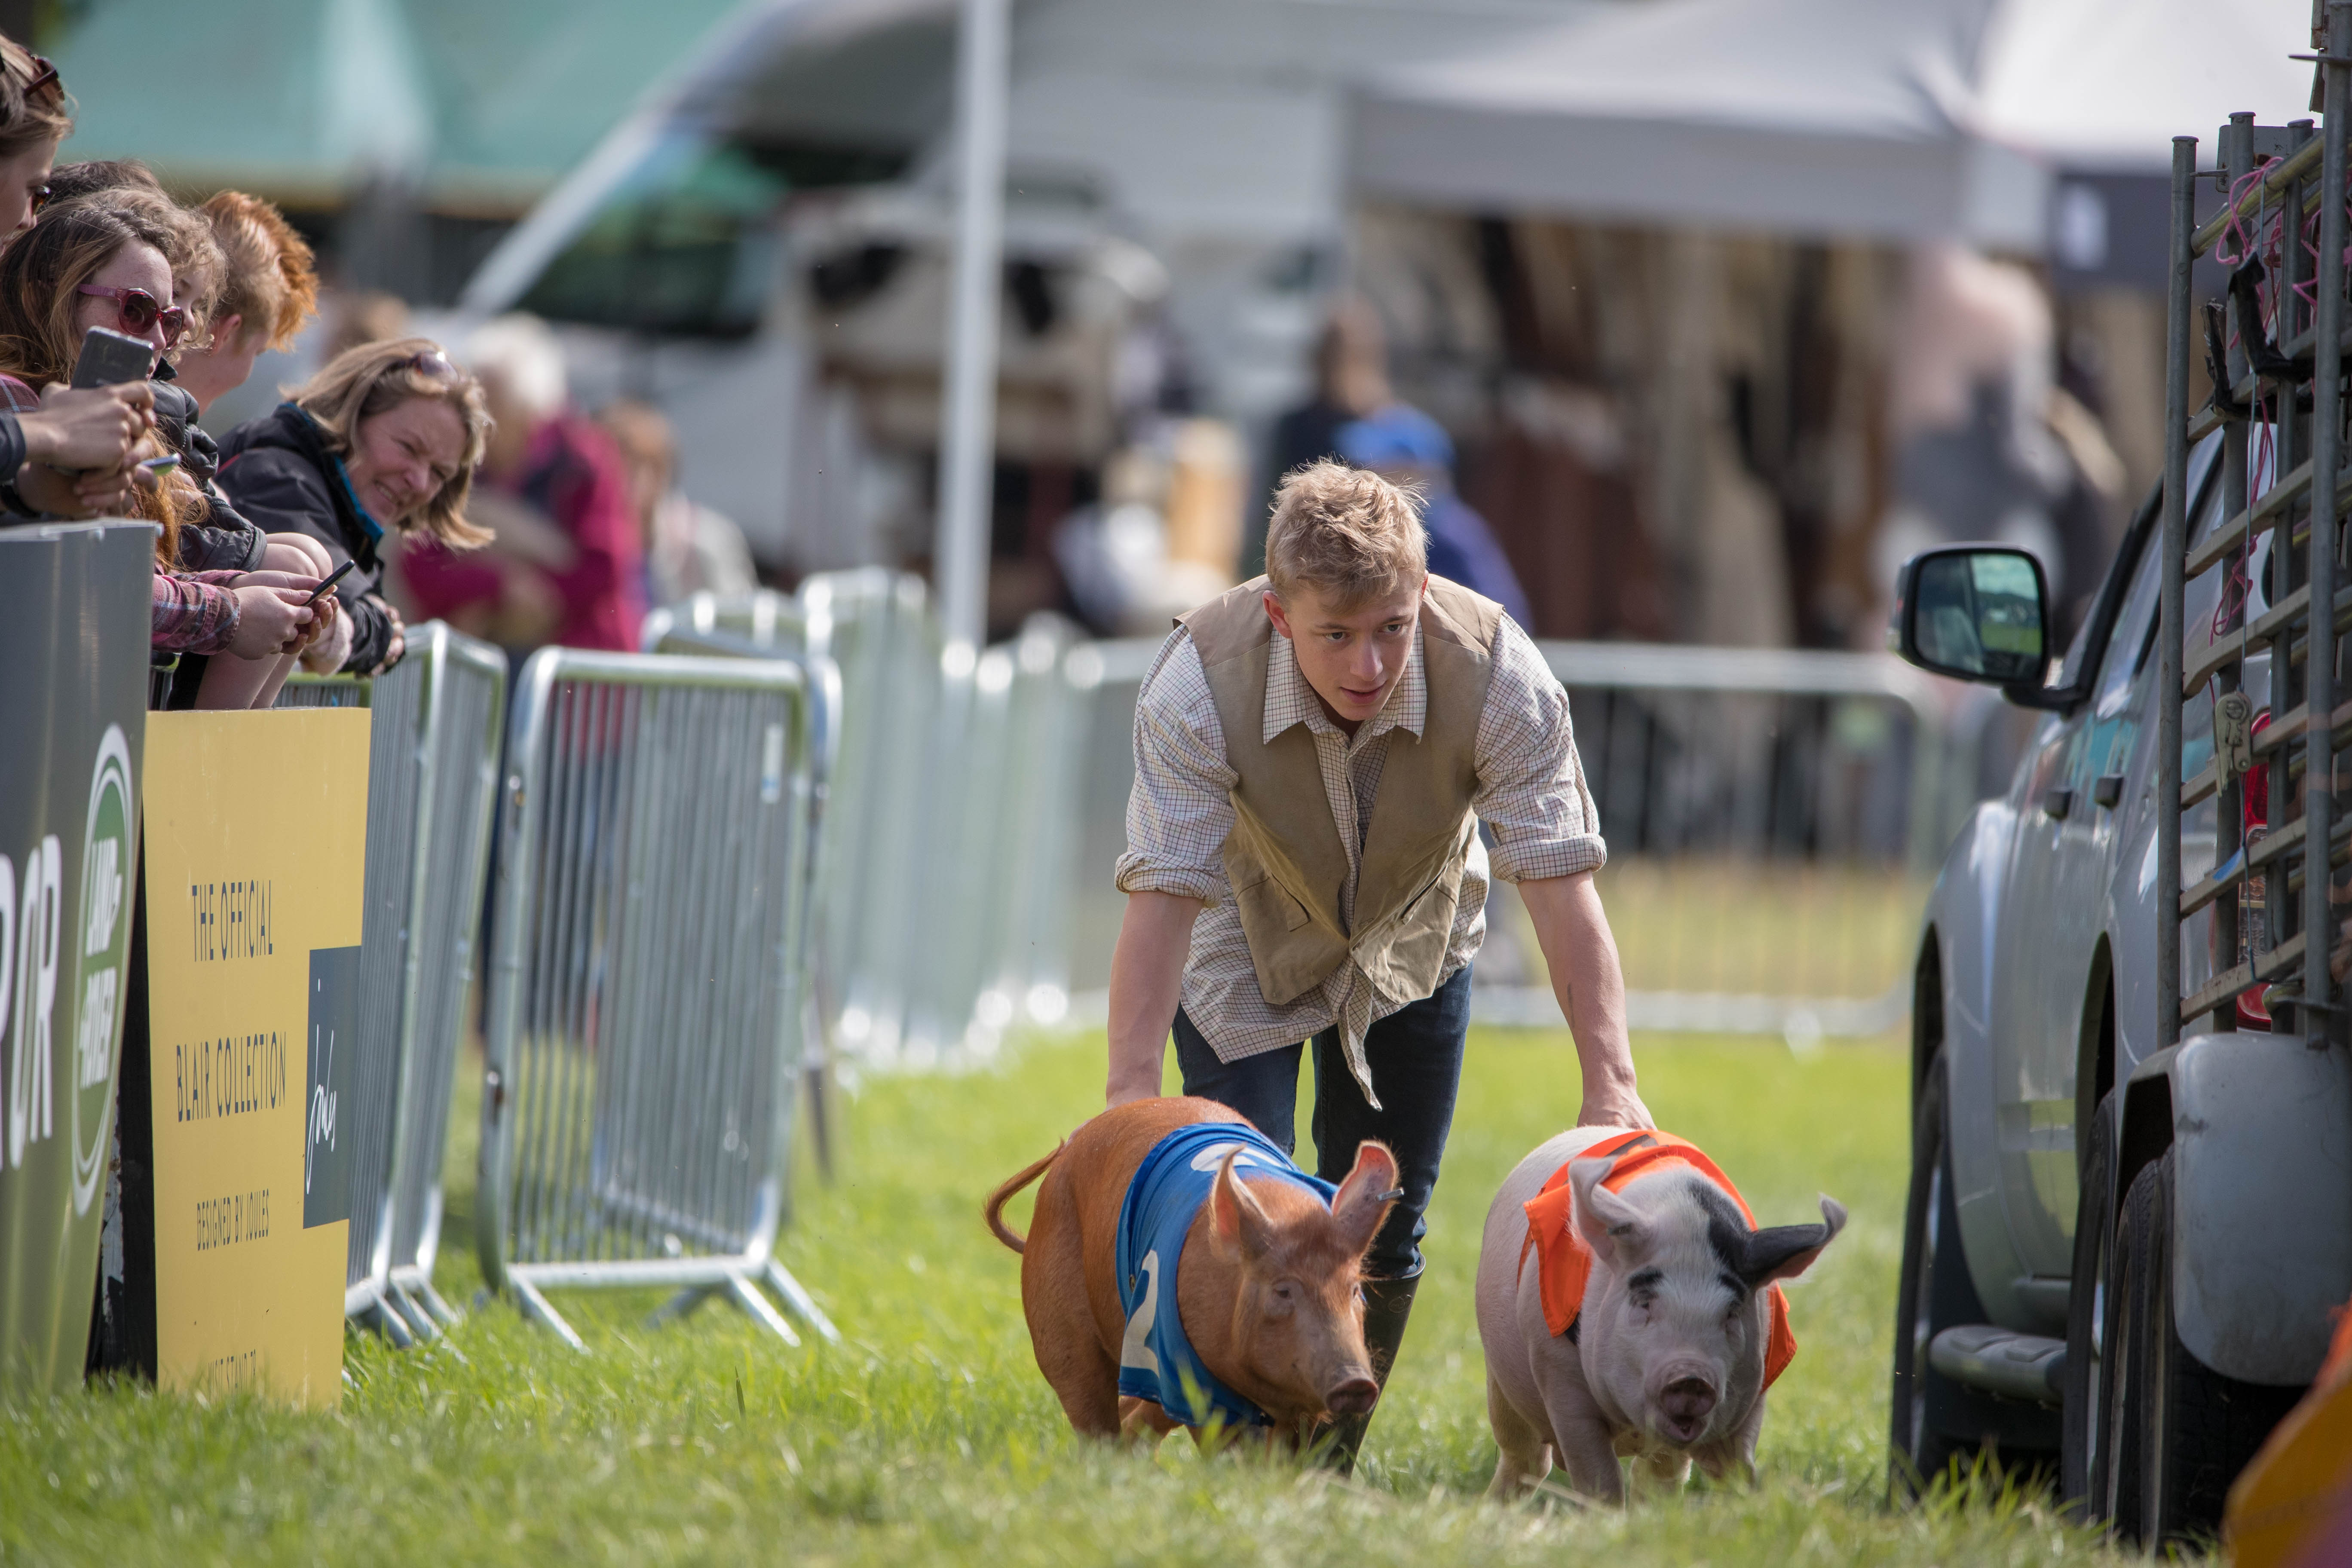 Hogging the limelight - pig racing in Perthshire - The Courier